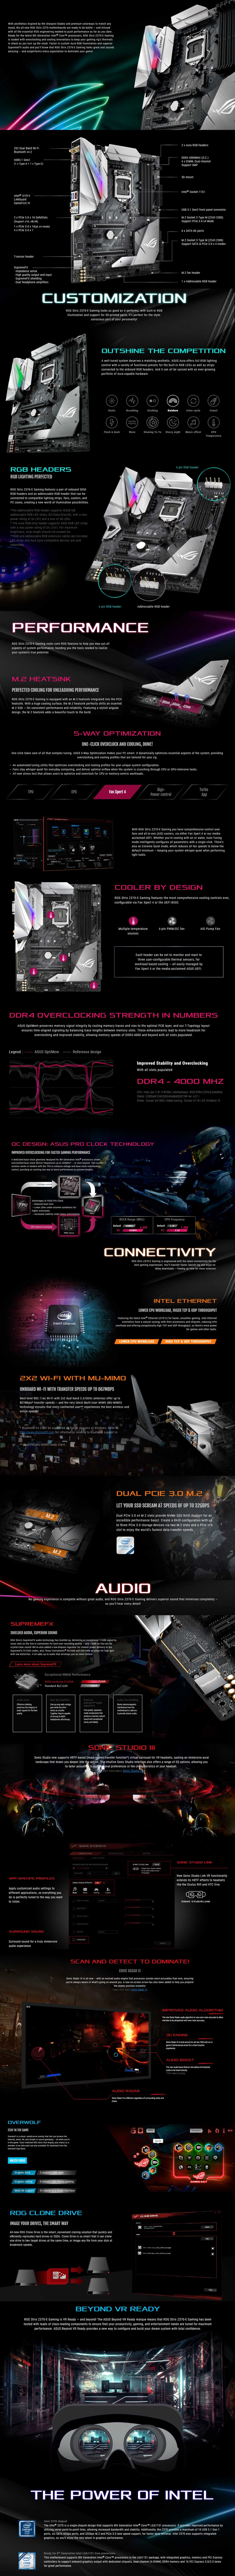 Asus Addressable Rgb Motherboard